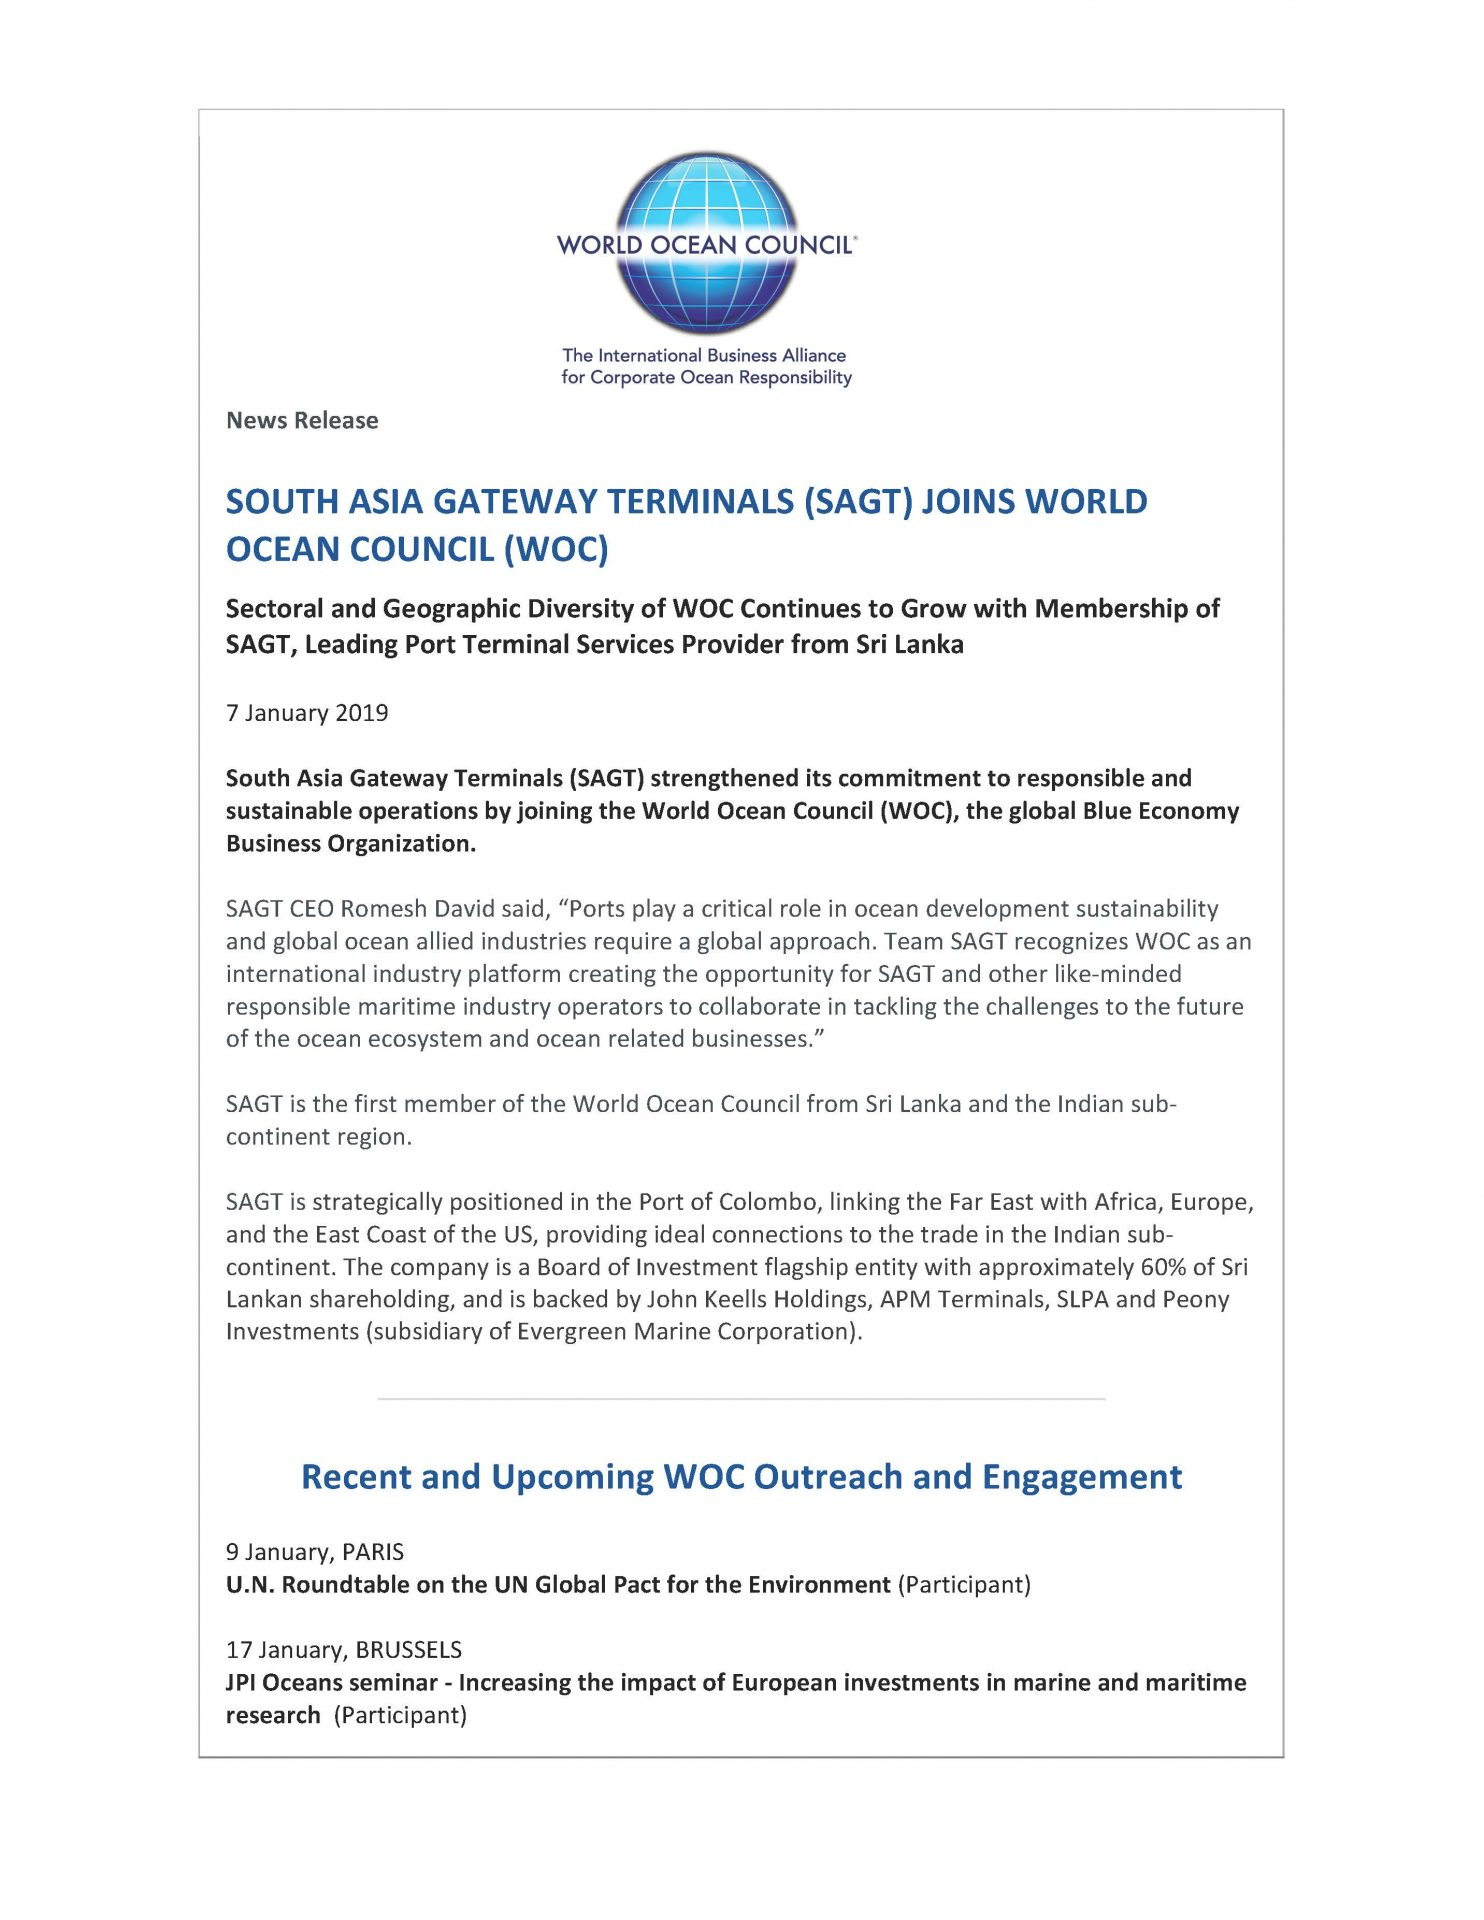 South Asia Gateway Terminals (SAGT) Joins World Ocean Council (WOC) - 7 January 2019